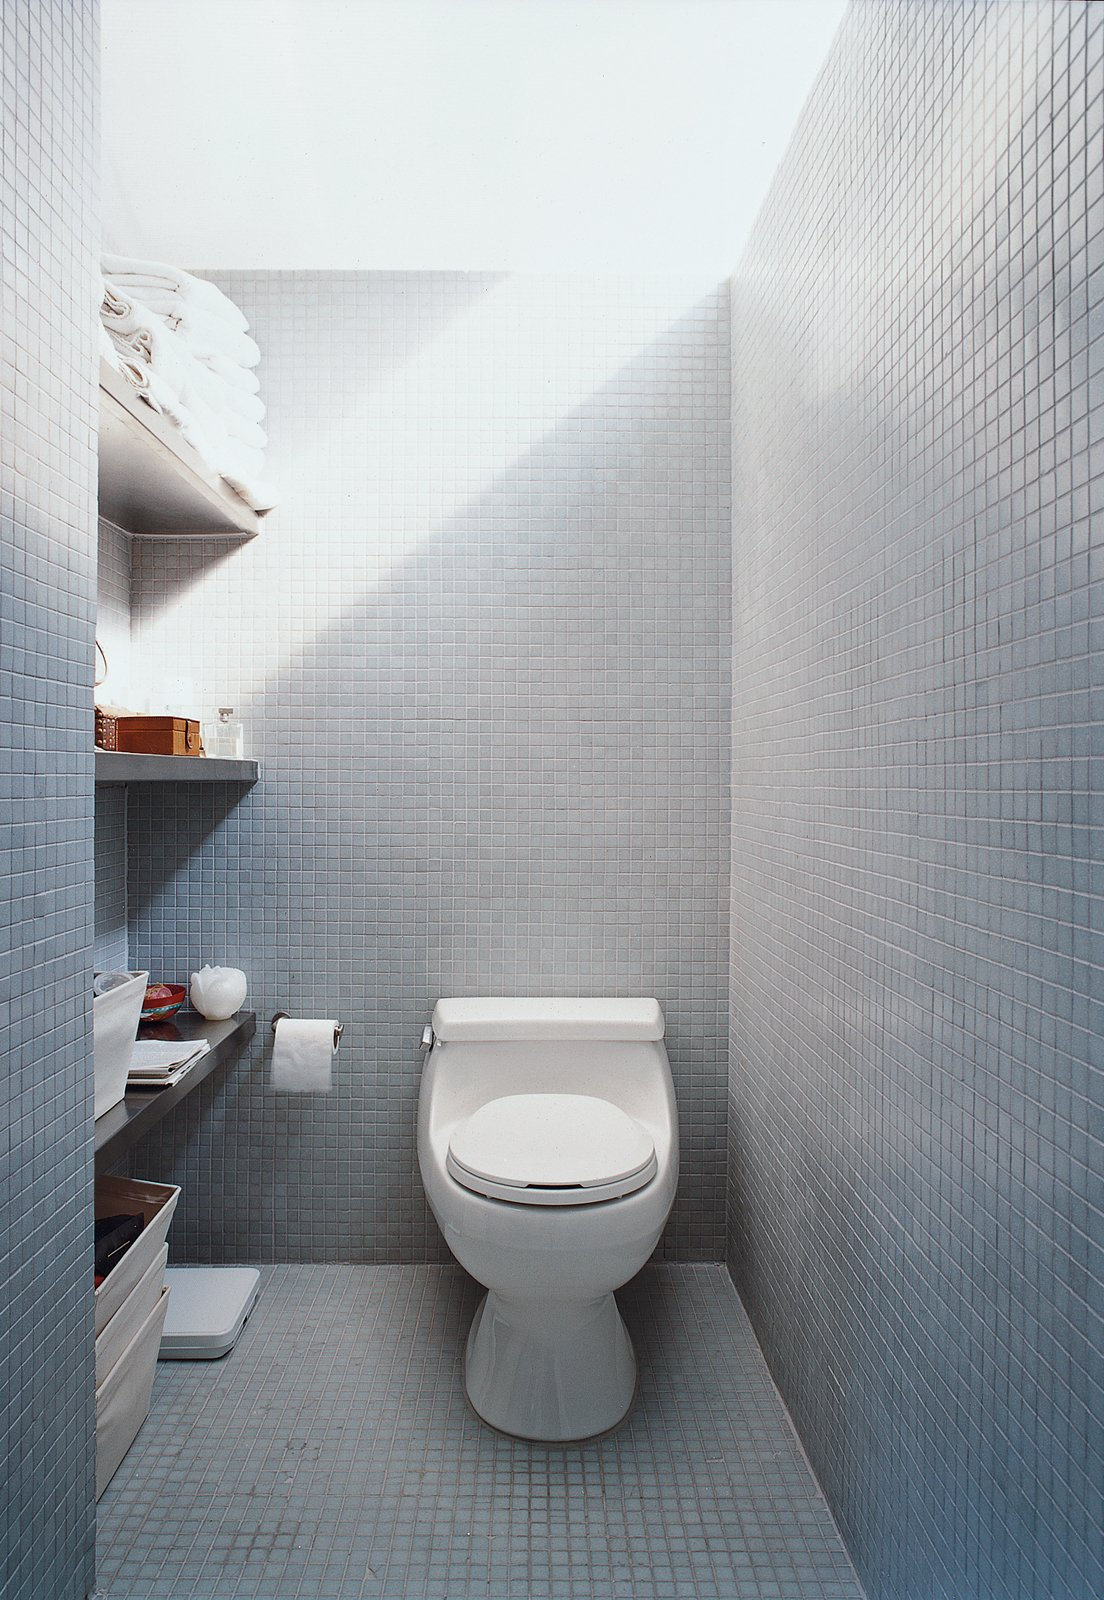 Bath, Ceramic Tile, and One Piece The LV prototype's bathroom shows how buyers can vary finish levels according to budget.  Best Bath Ceramic Tile One Piece Photos from All You Need Is LV